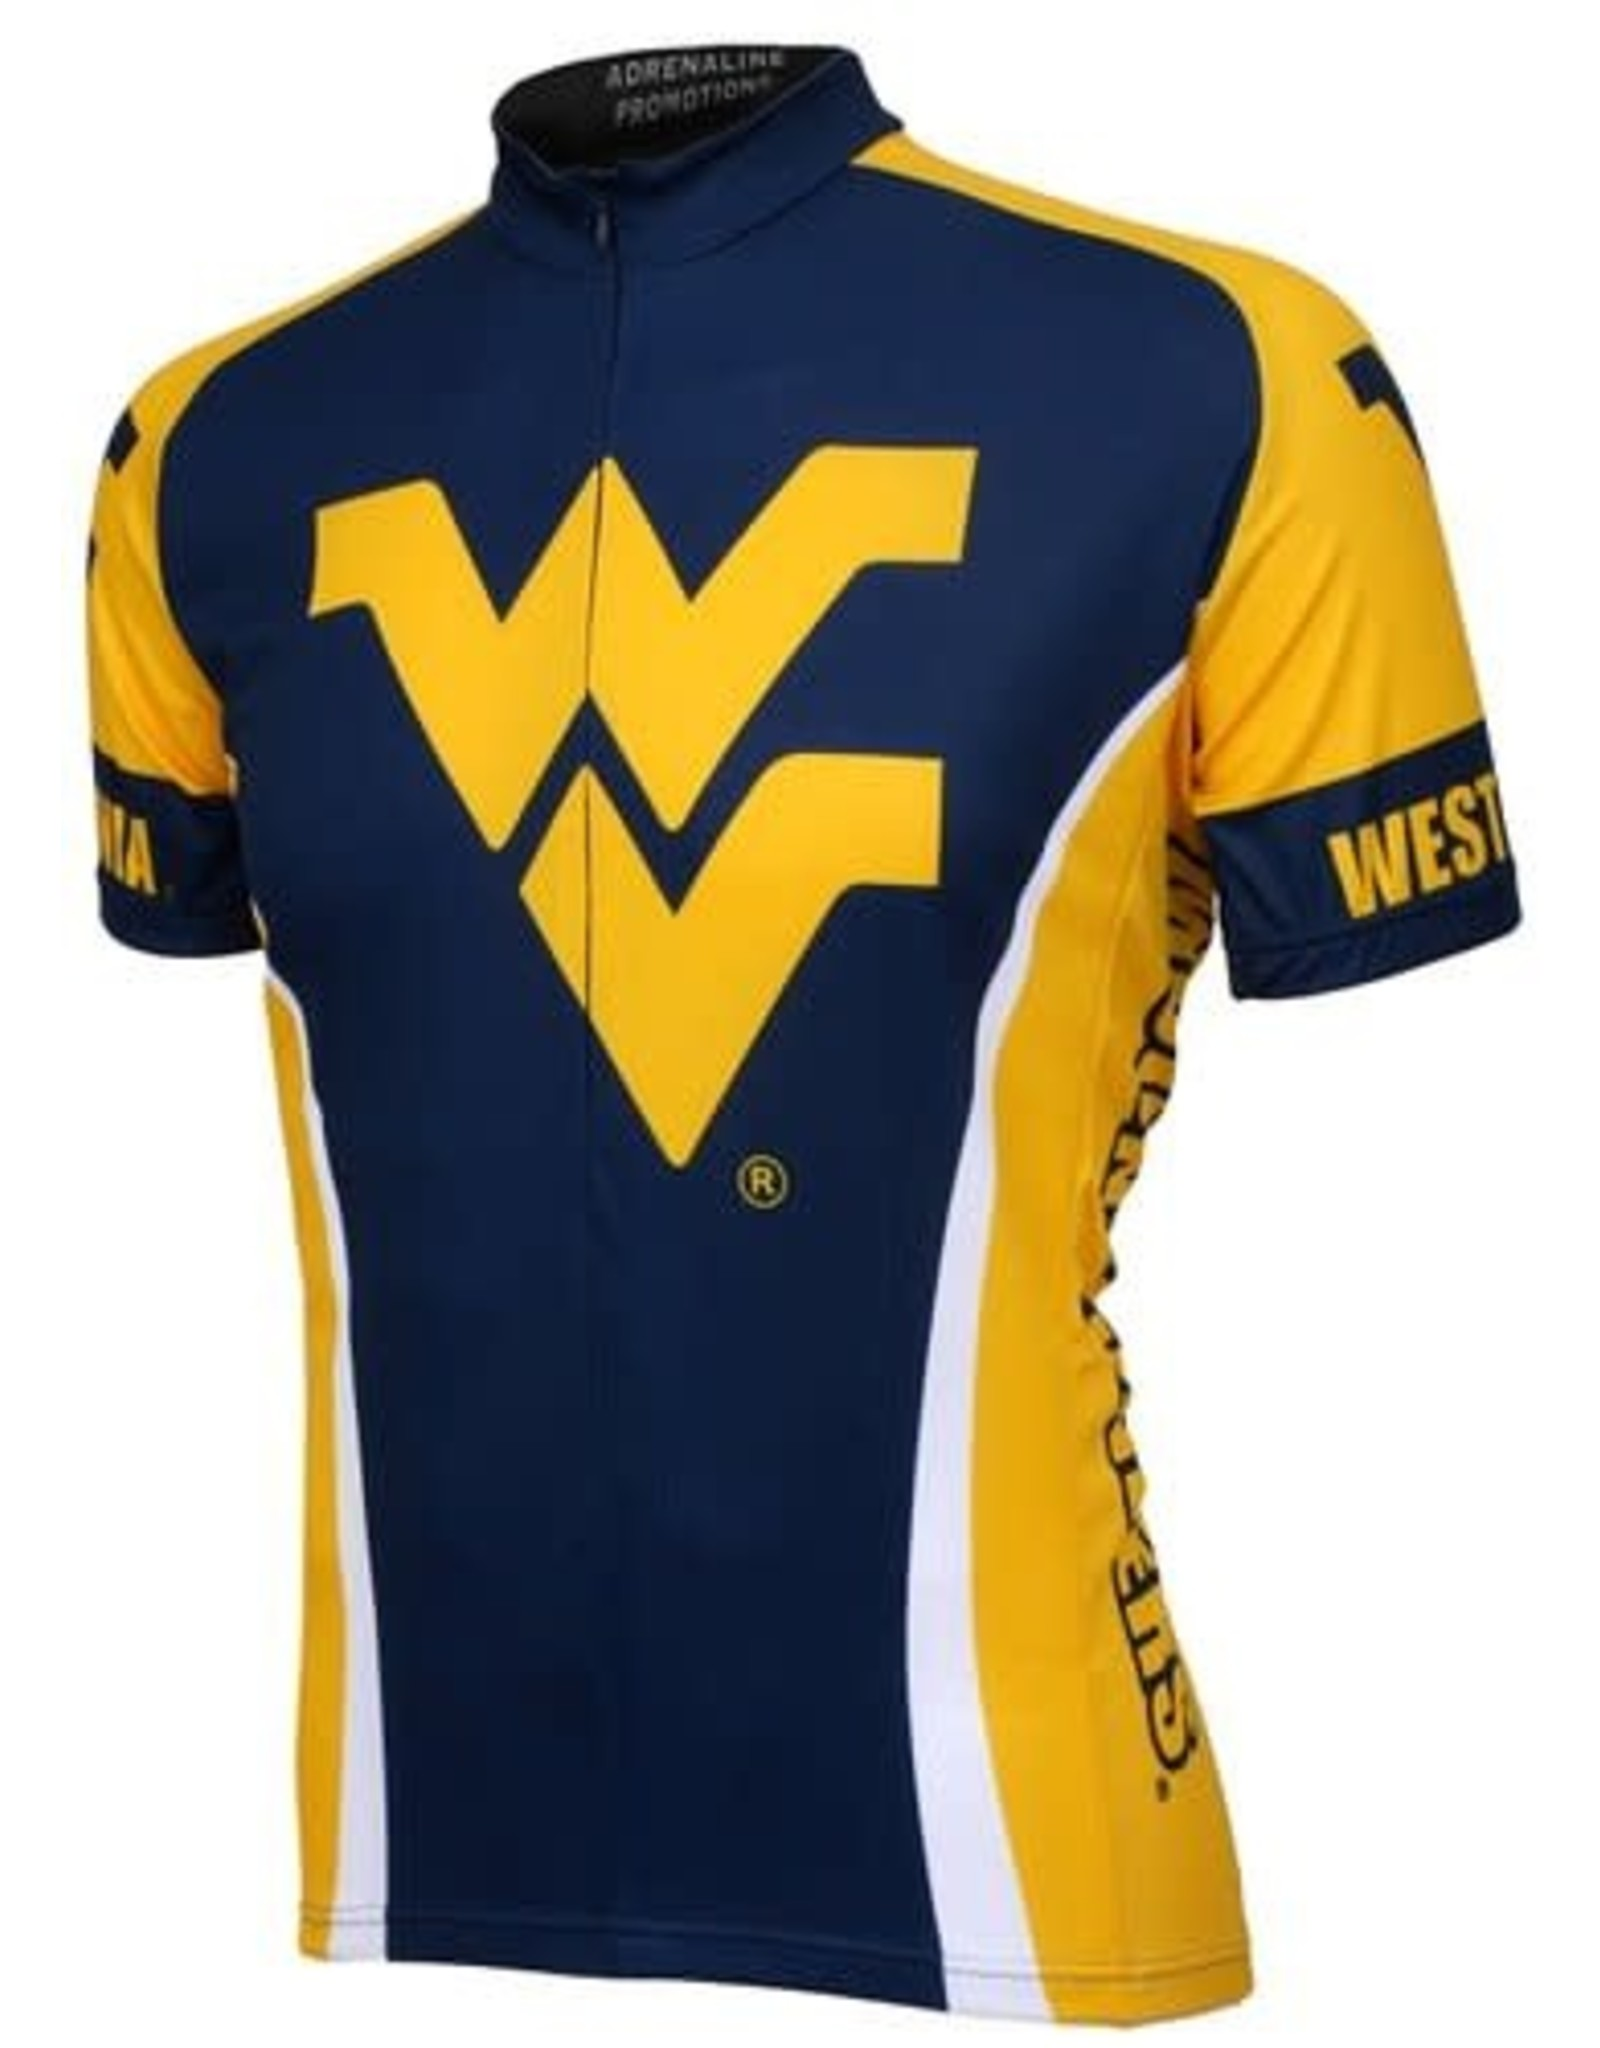 Adrenaline Promotions WVU Cycling Jersey